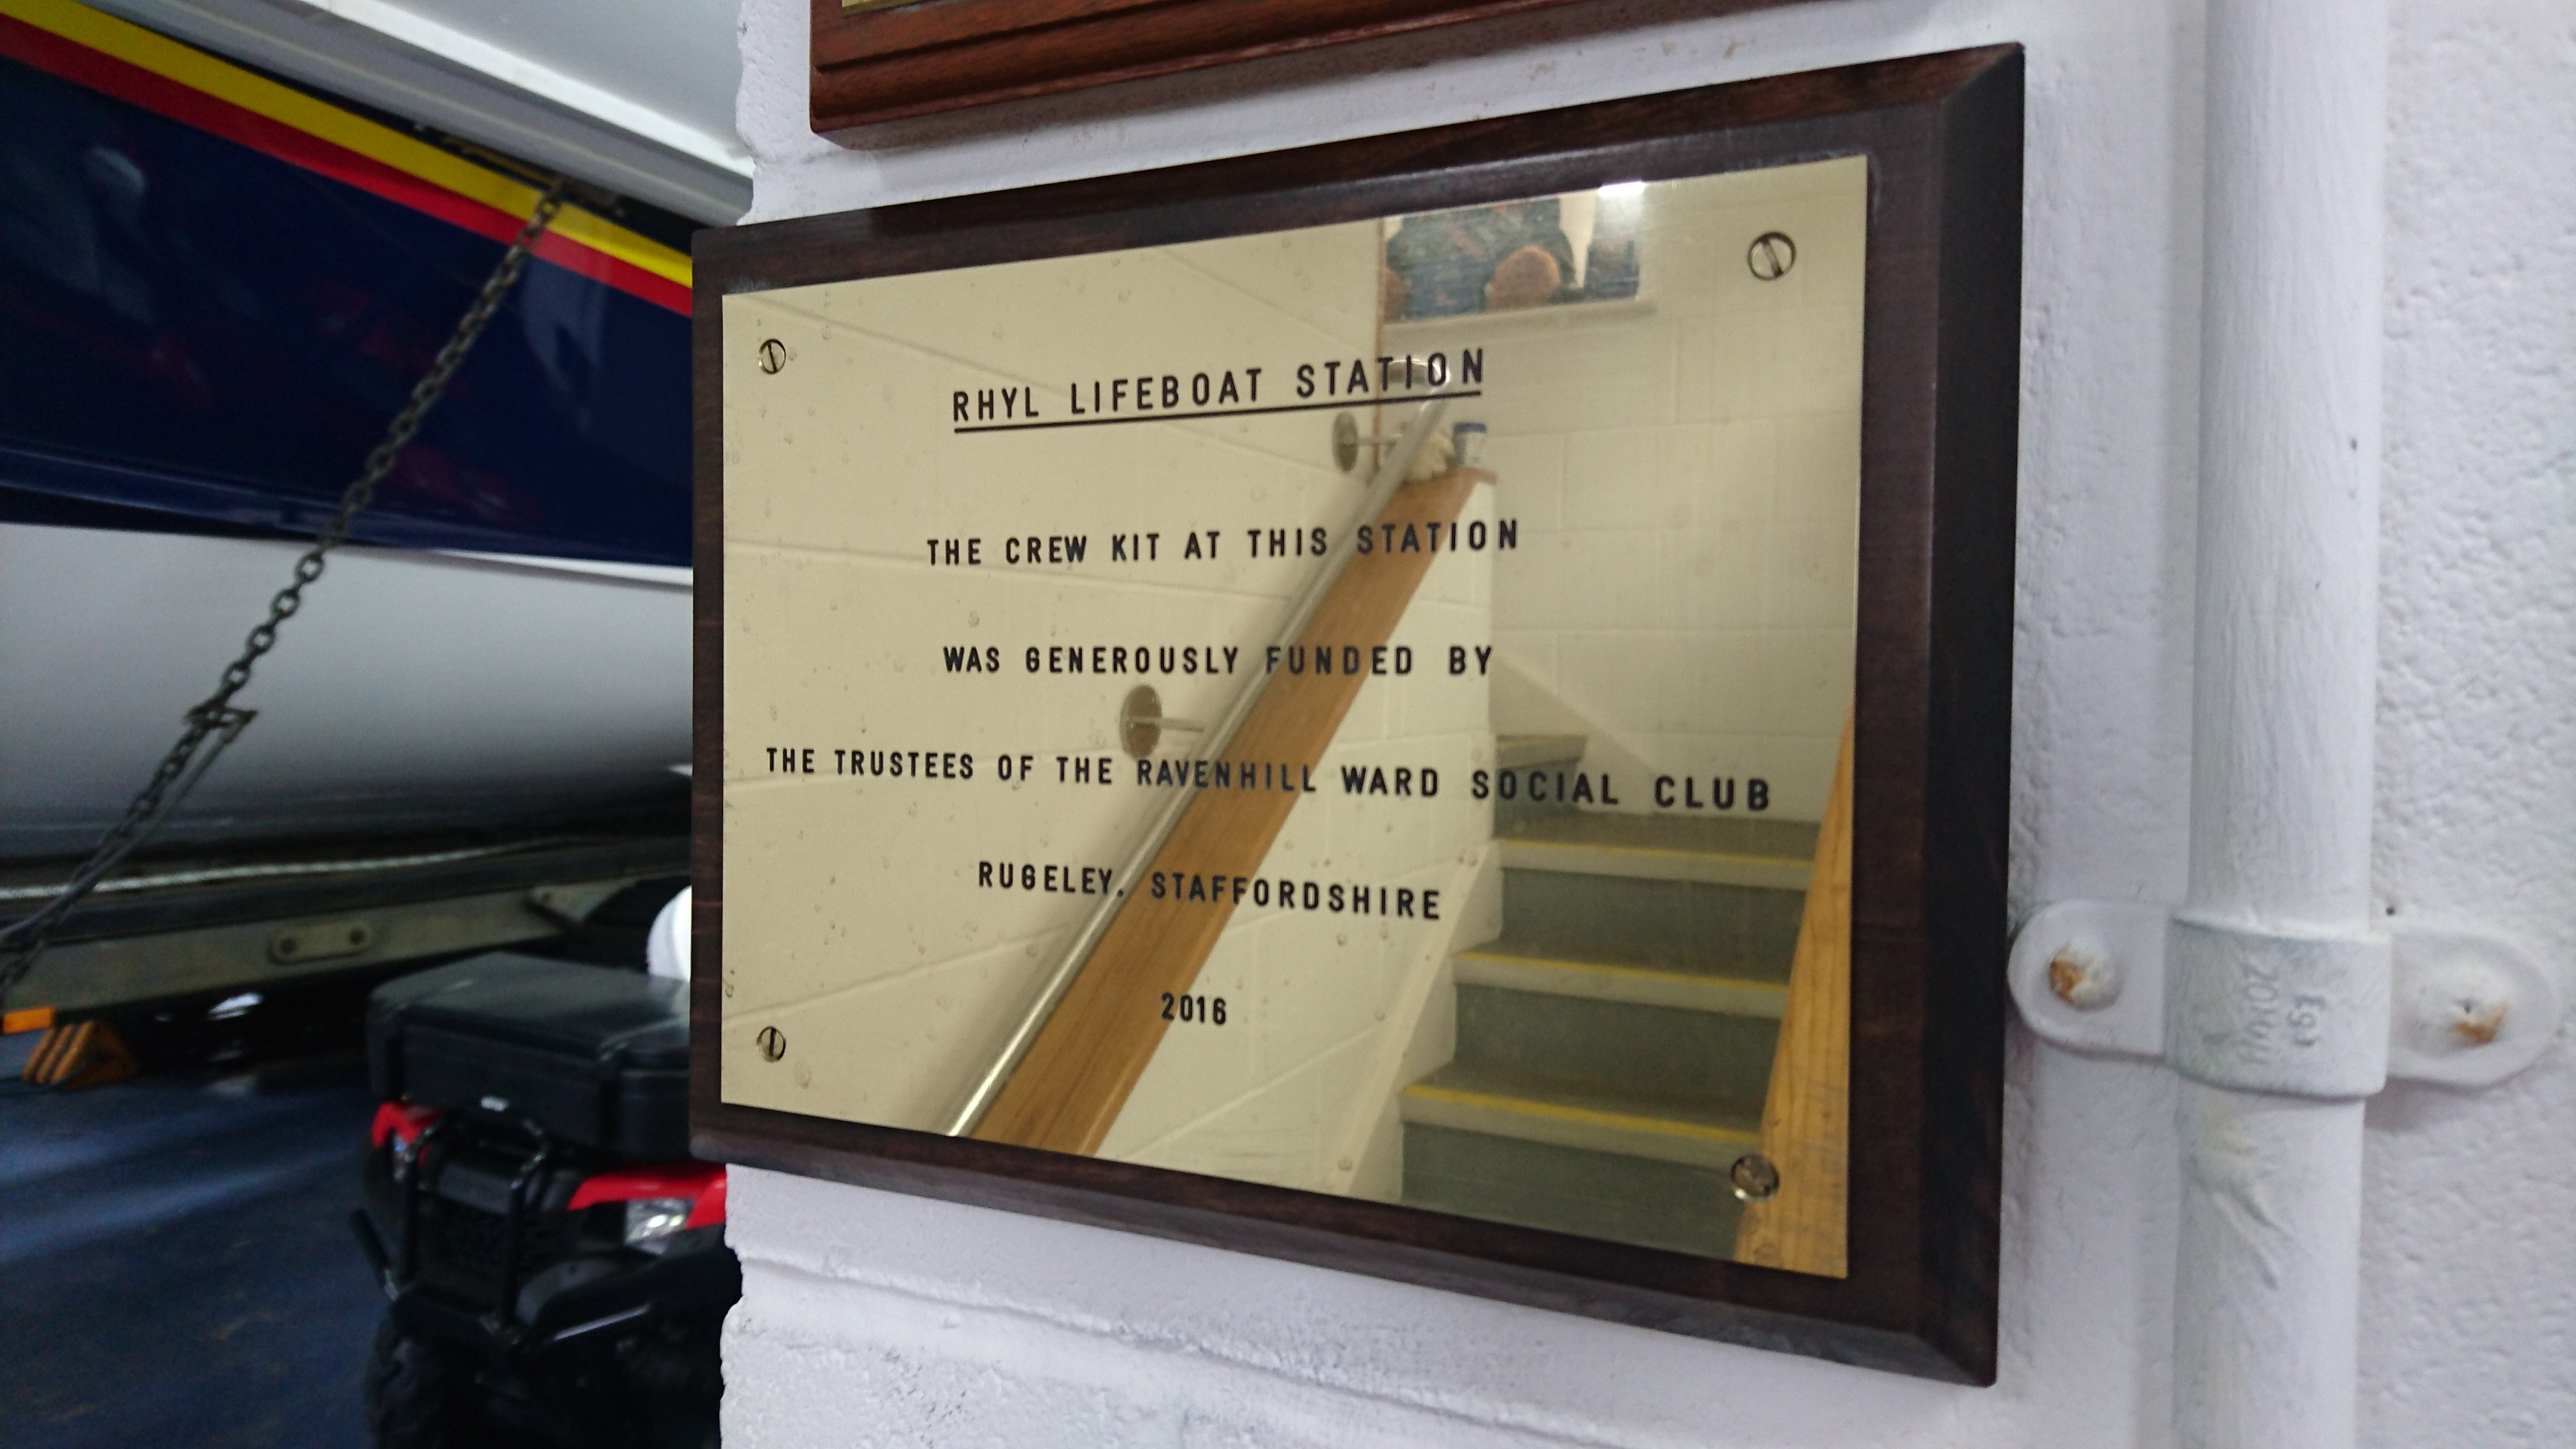 Plaque erected to show record of donation in Rhyl RNLI lifeboat station.